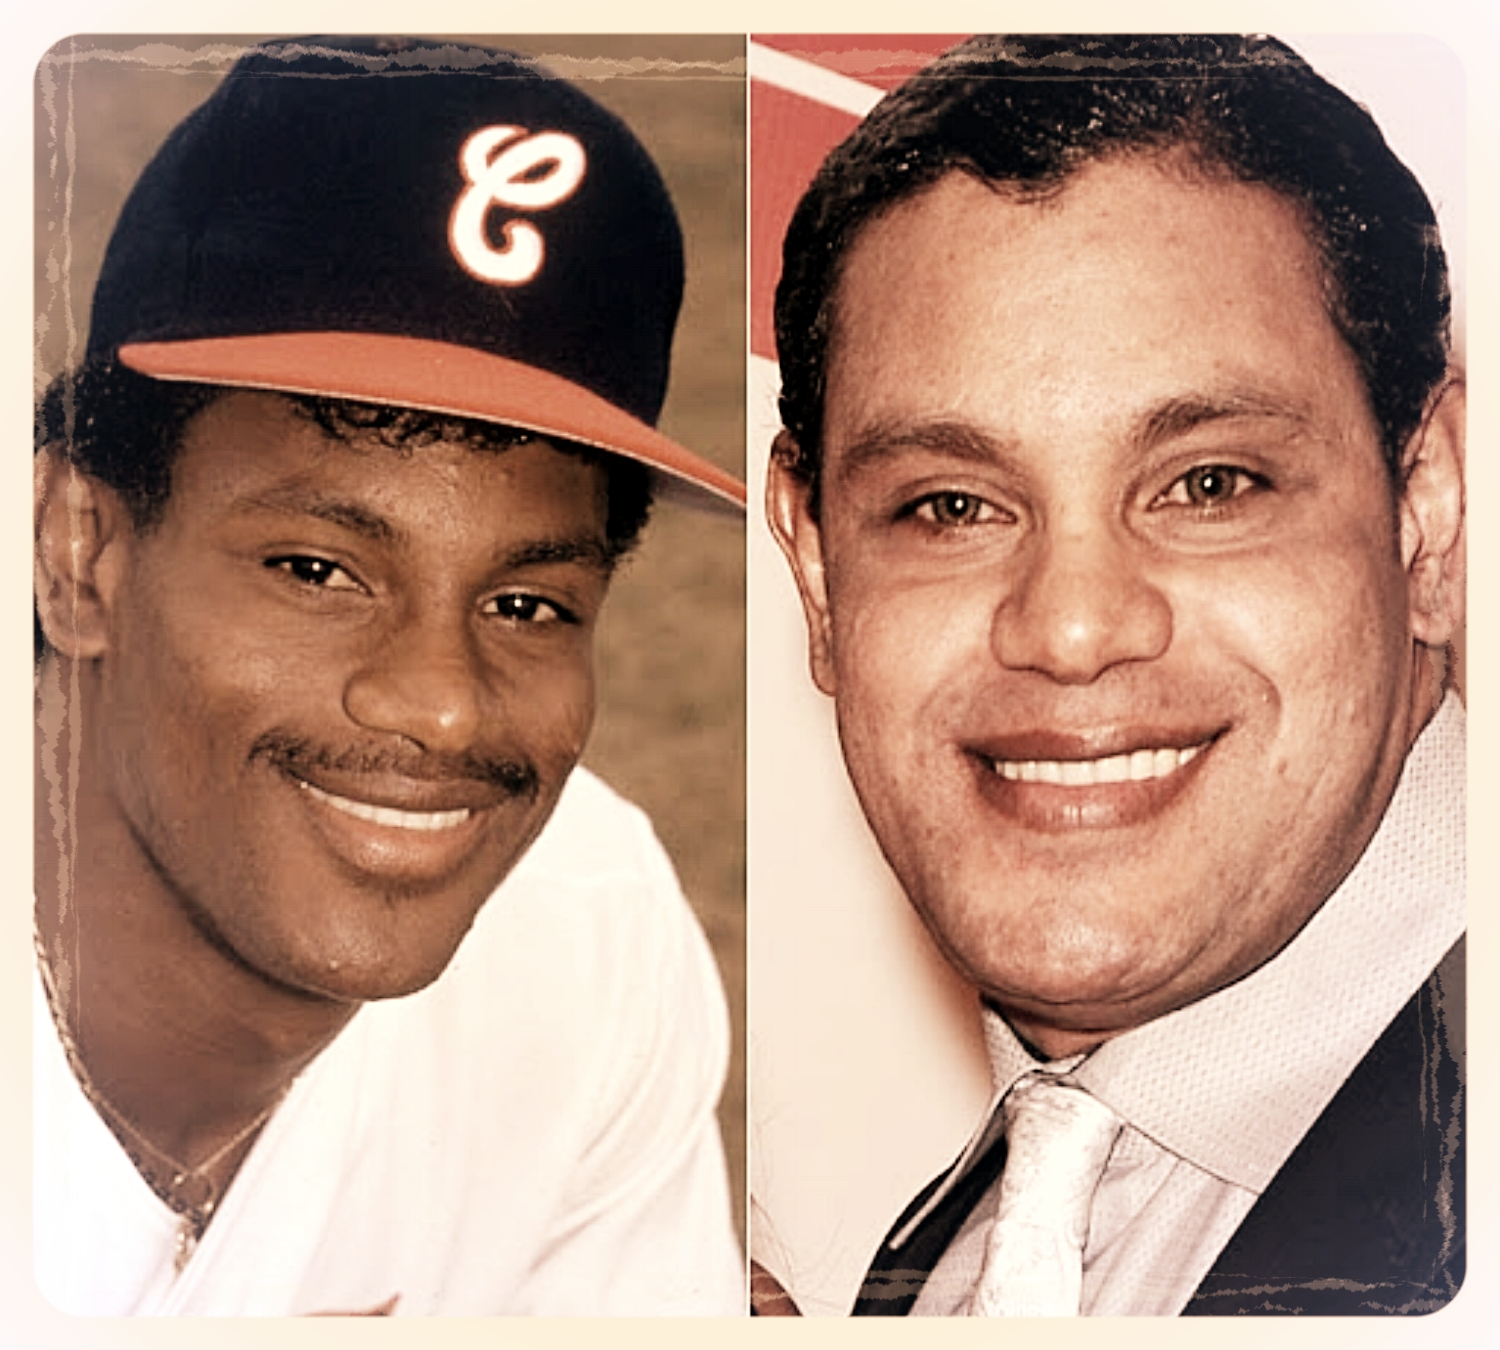 MLB great, Sammy Sosa, before and after